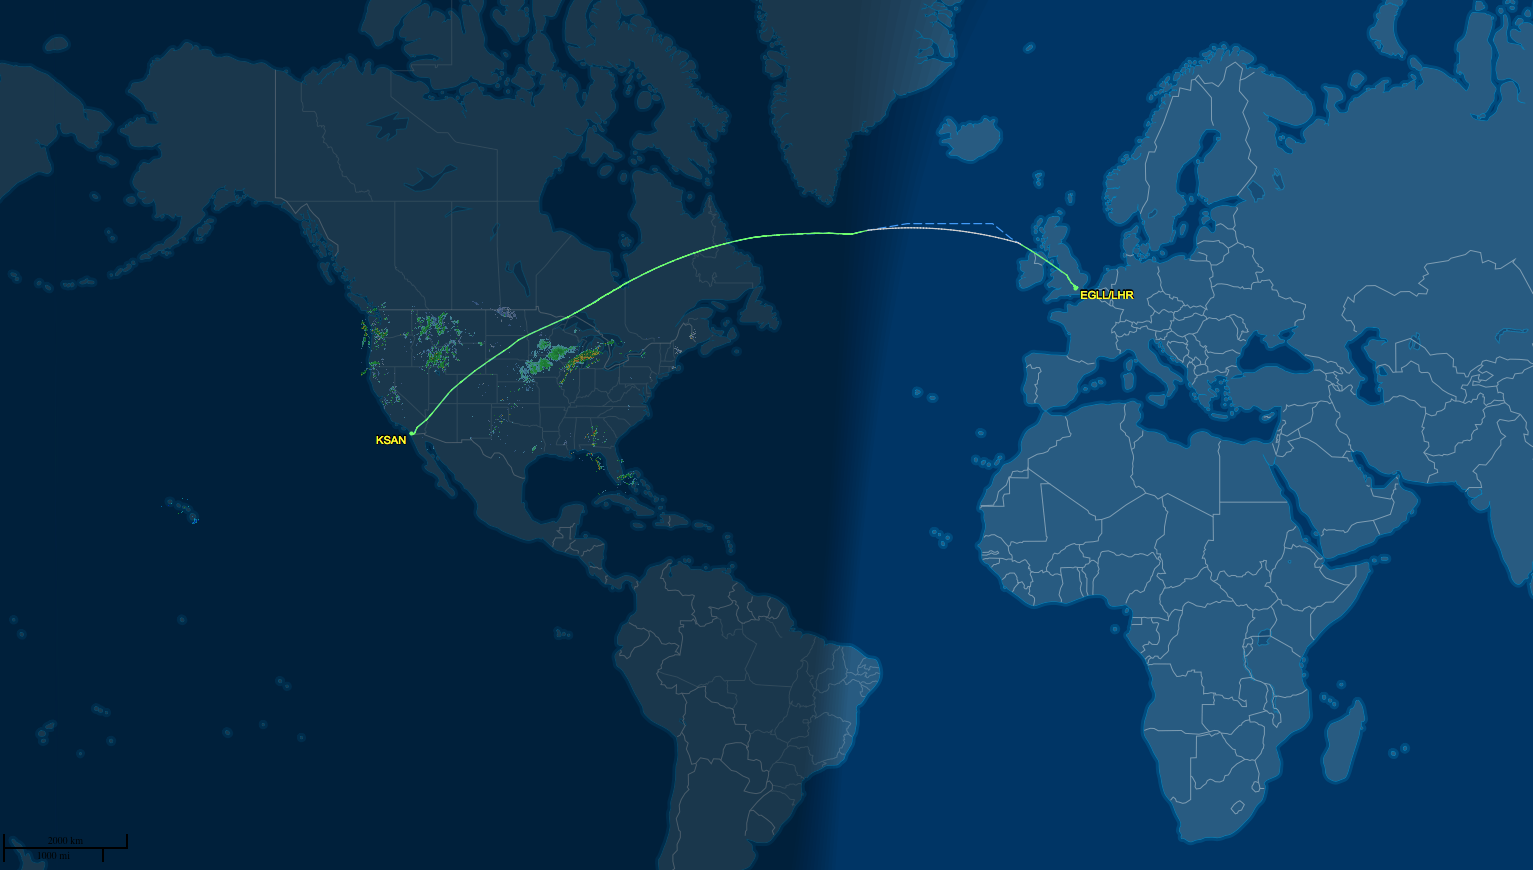 SAN to LHR route map